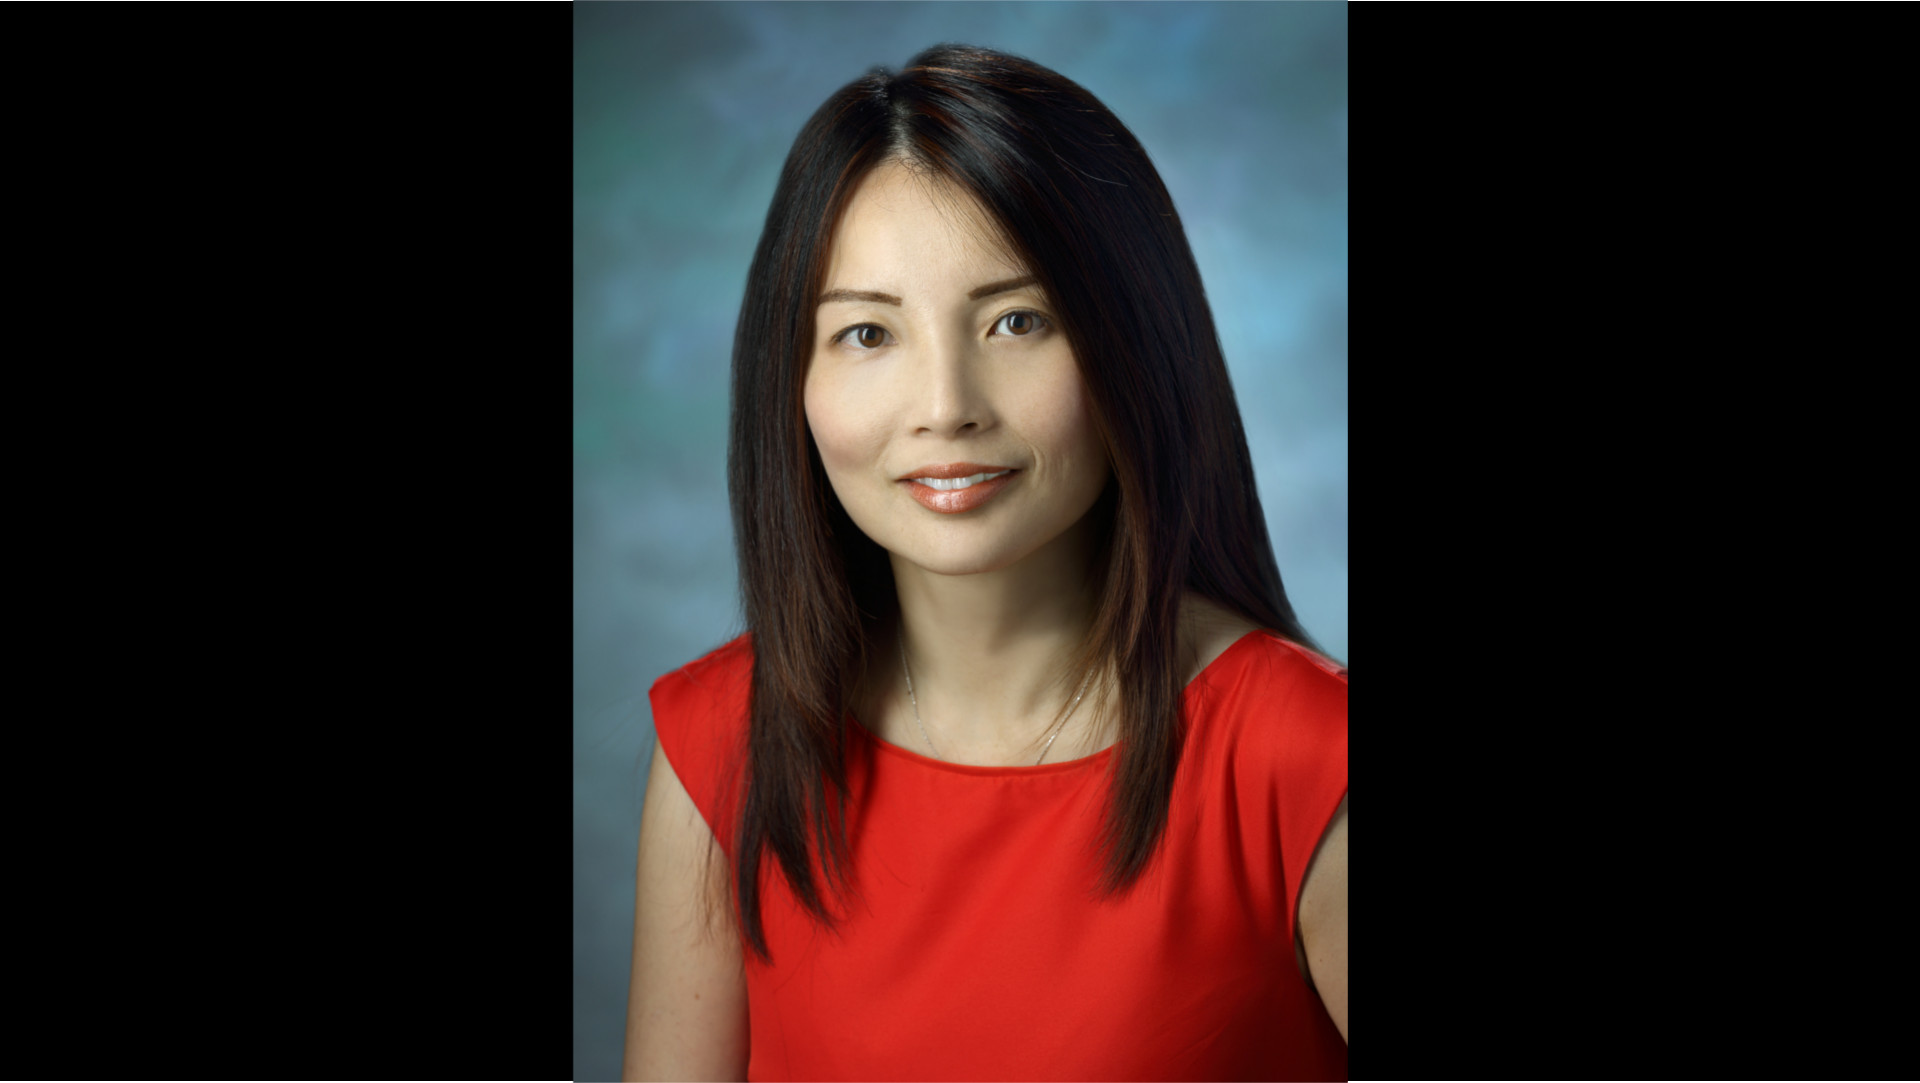 Charissa Cheah receives Fulbright award to research identity development of Muslim Tunisian immigrant adolescents in Sicily